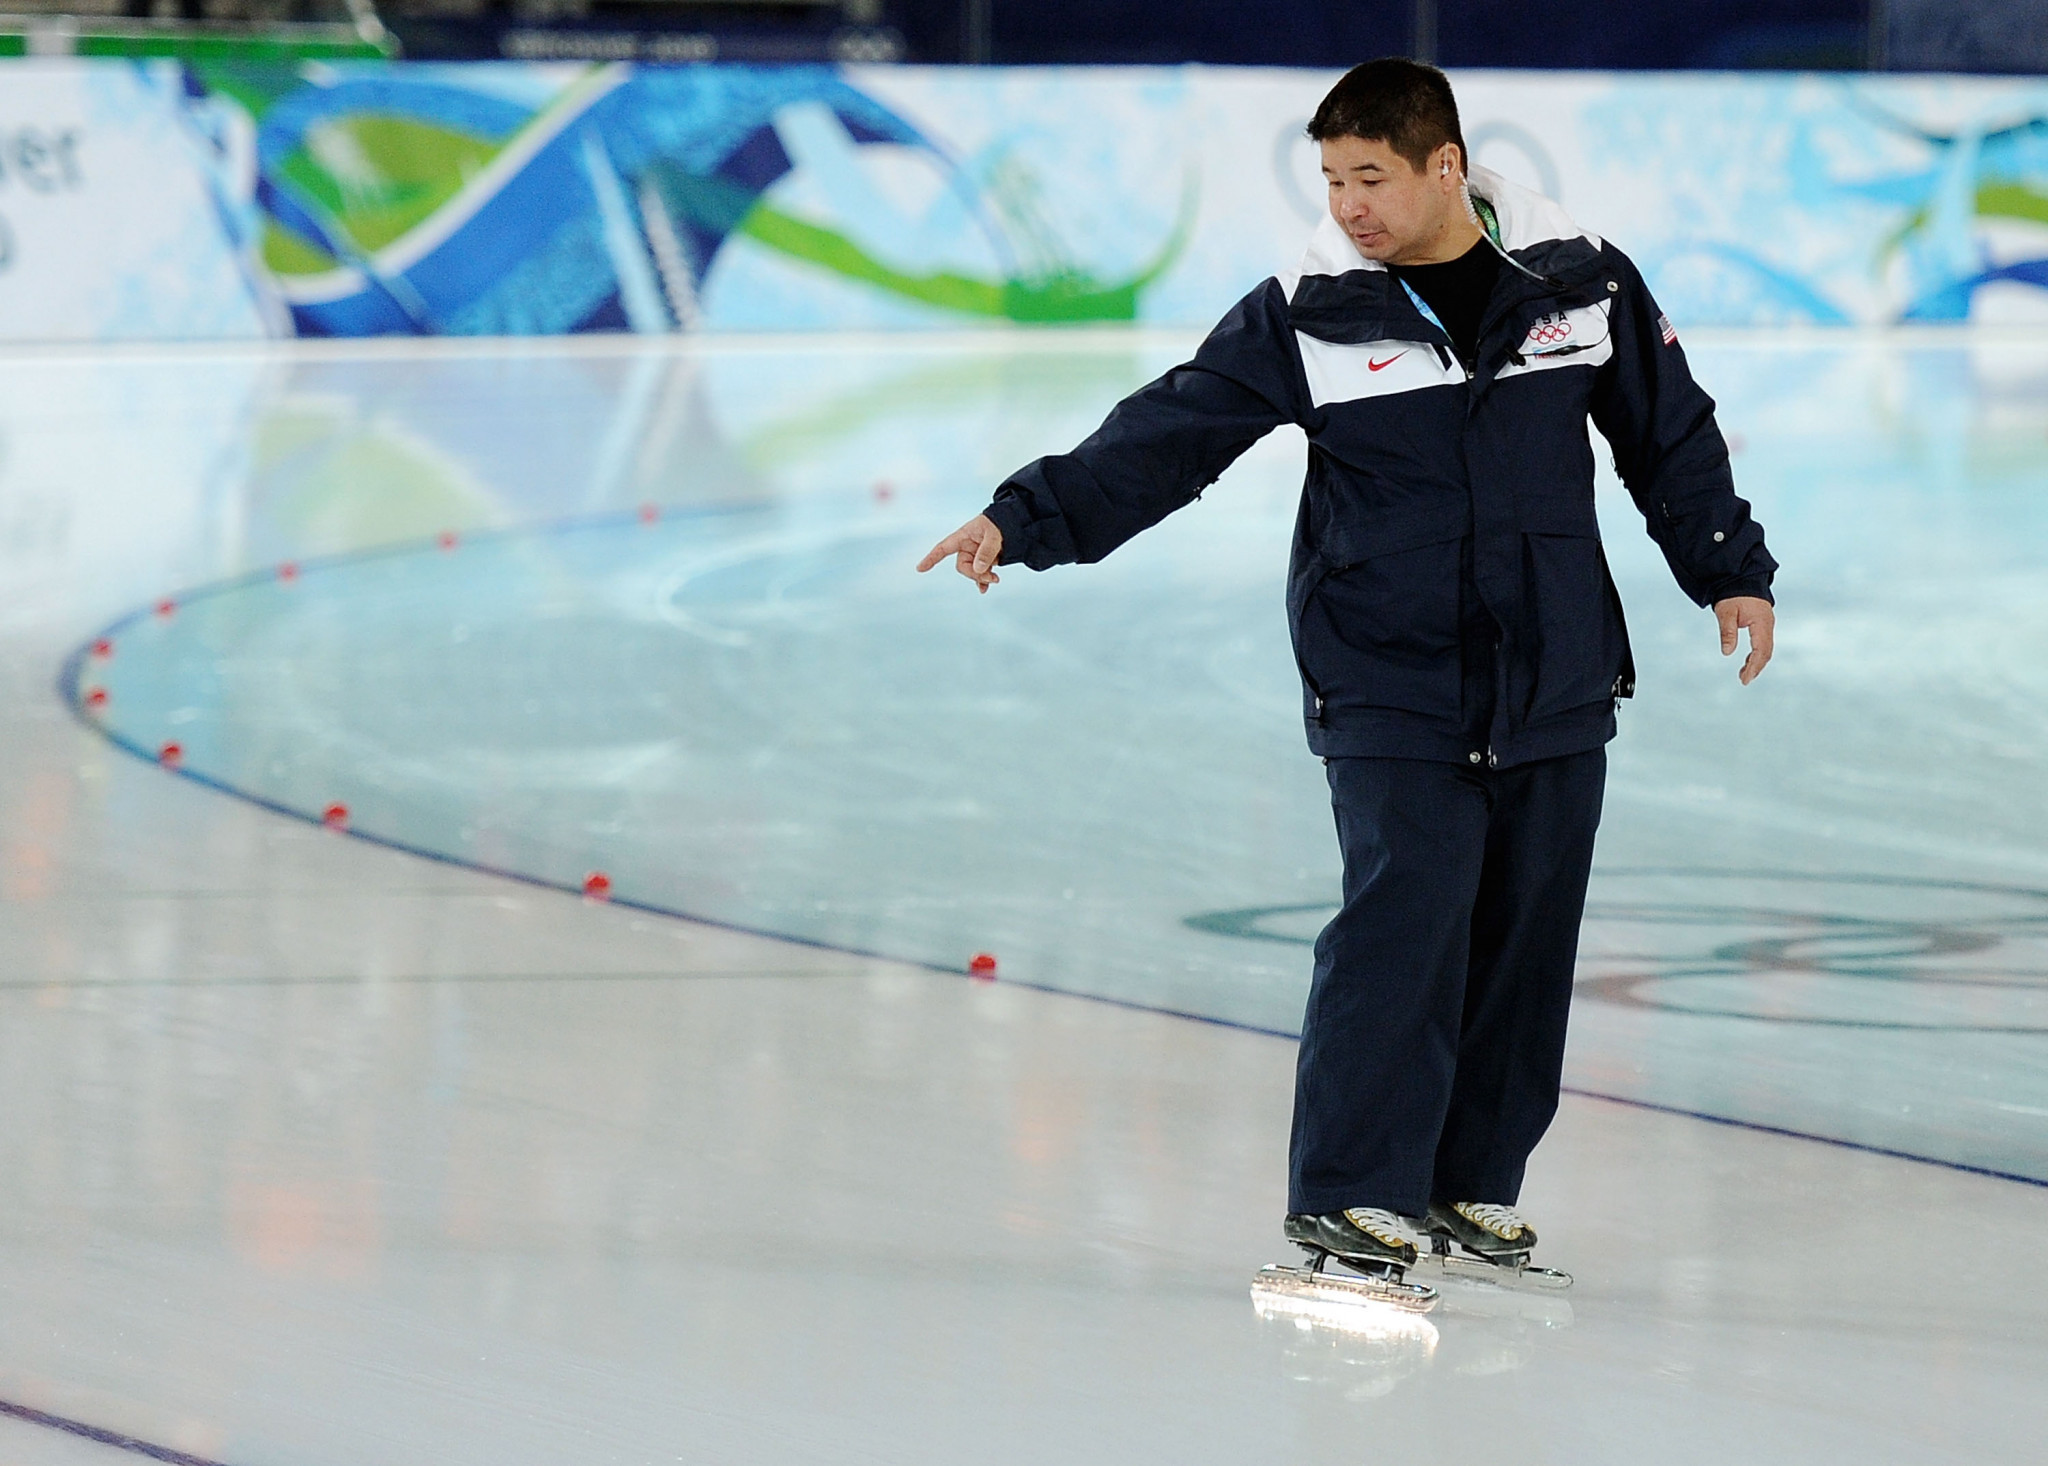 Ryan Shimabukuro previously coached three US Speedskating teams at the Olympic Games ©Getty Images